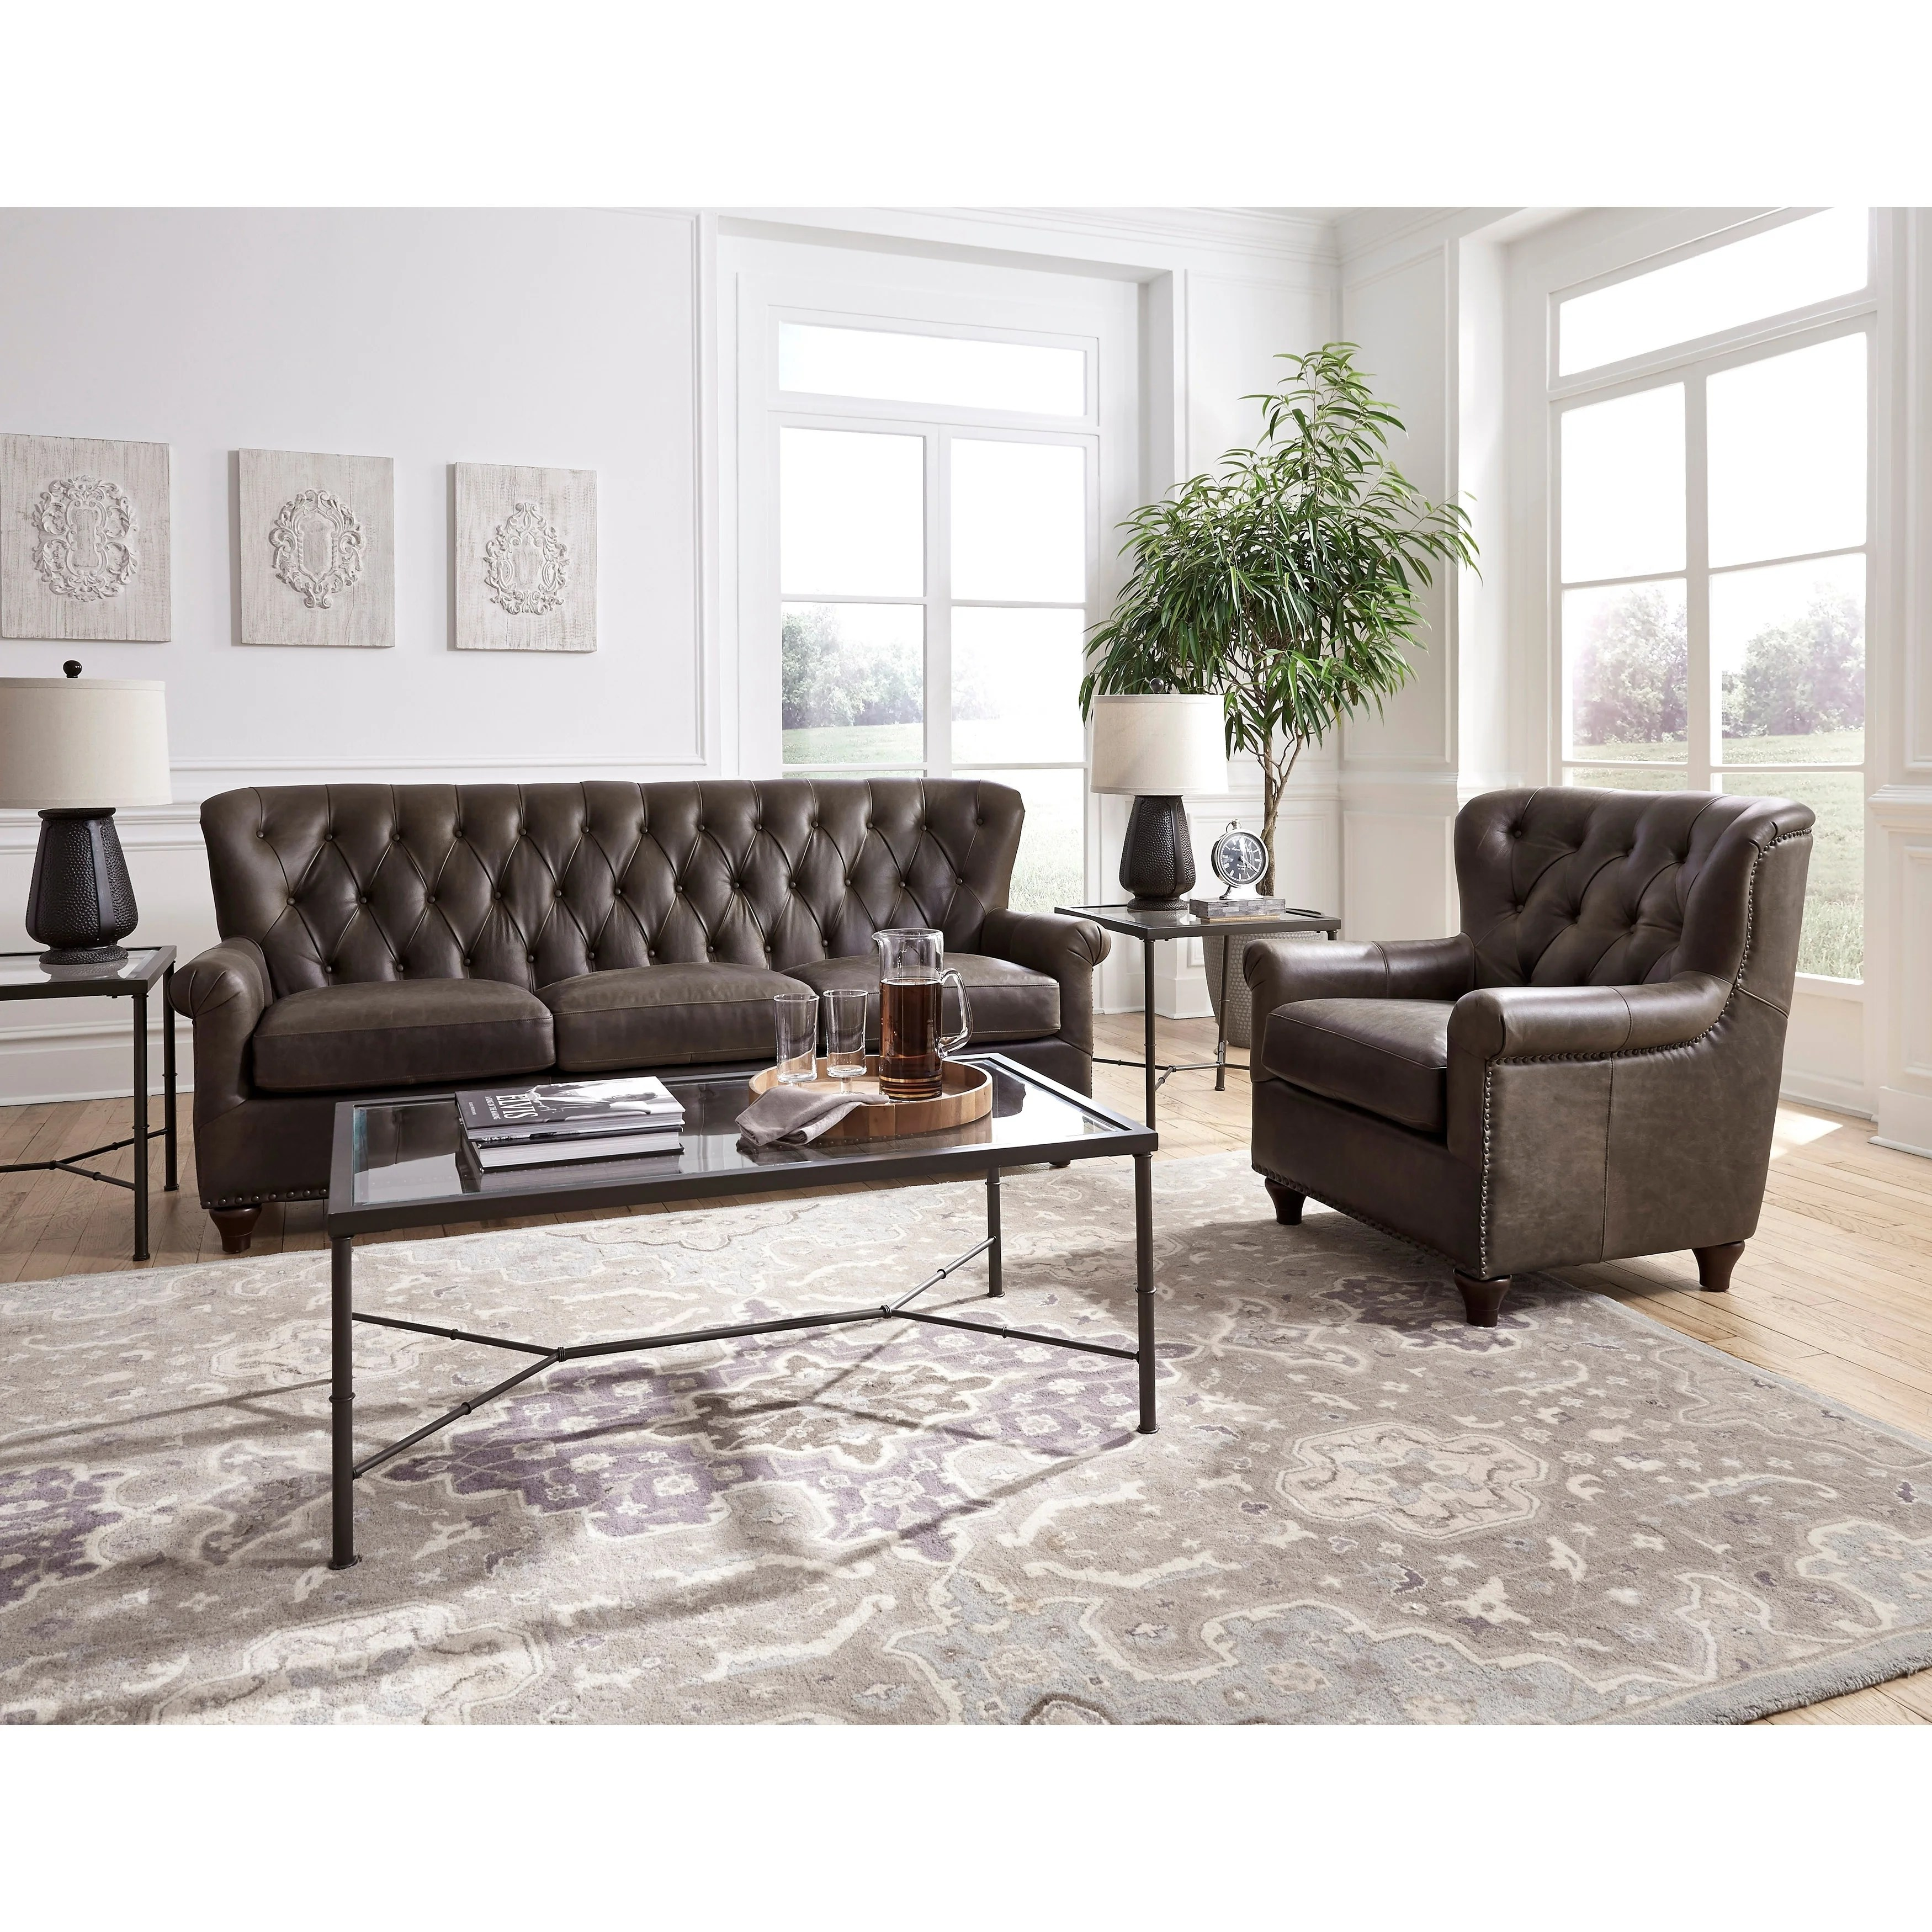 Chesterfield Sofa And Chairs Caseconrad Com